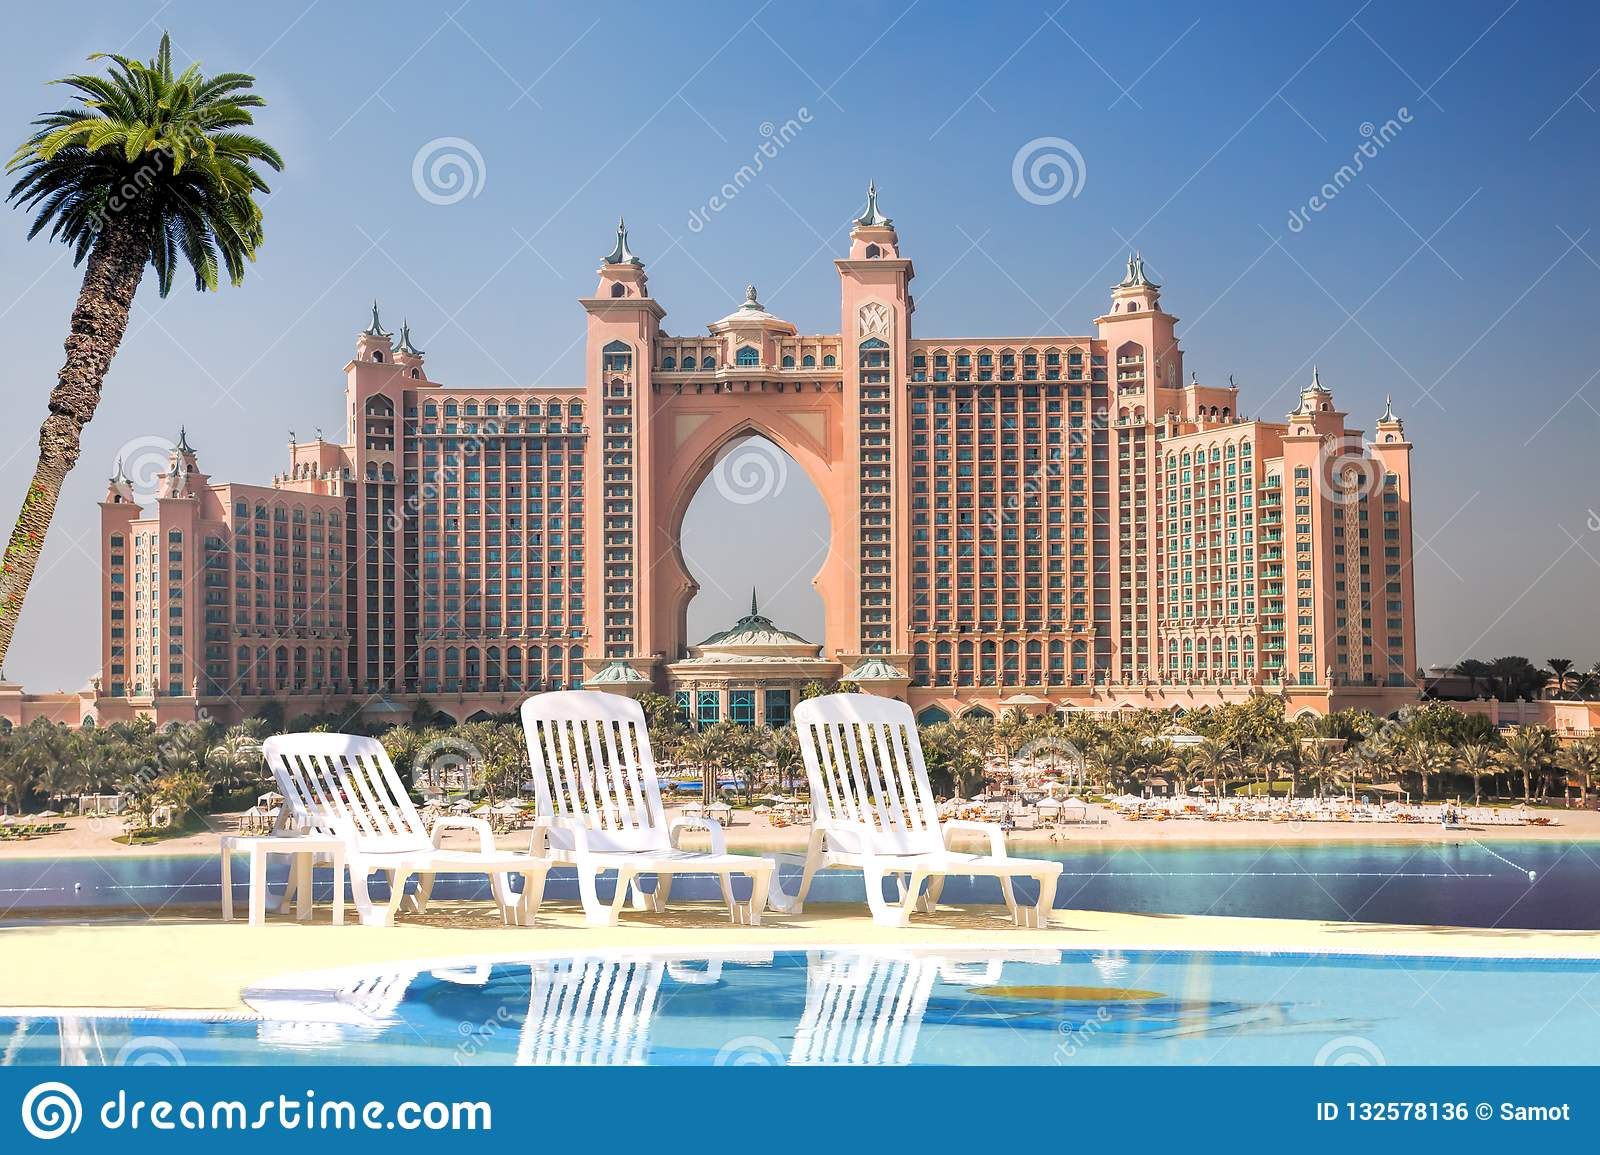 Atlantis Luxury Palm Hotel In Dubai United Arab Emirates Stock